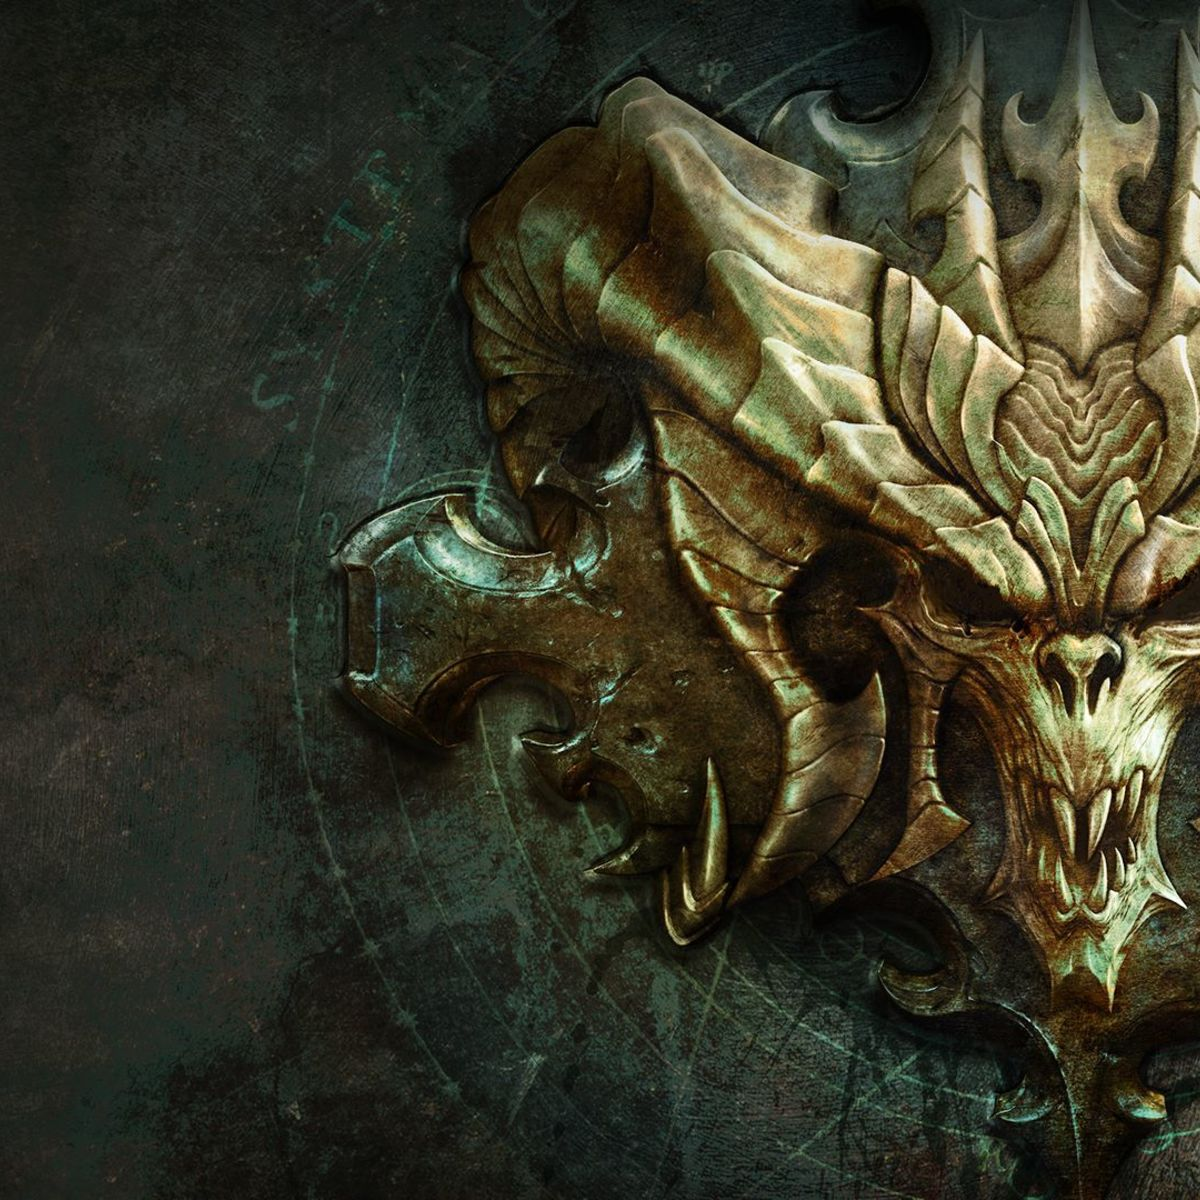 Diablo III Eternal Collection - Cover Art